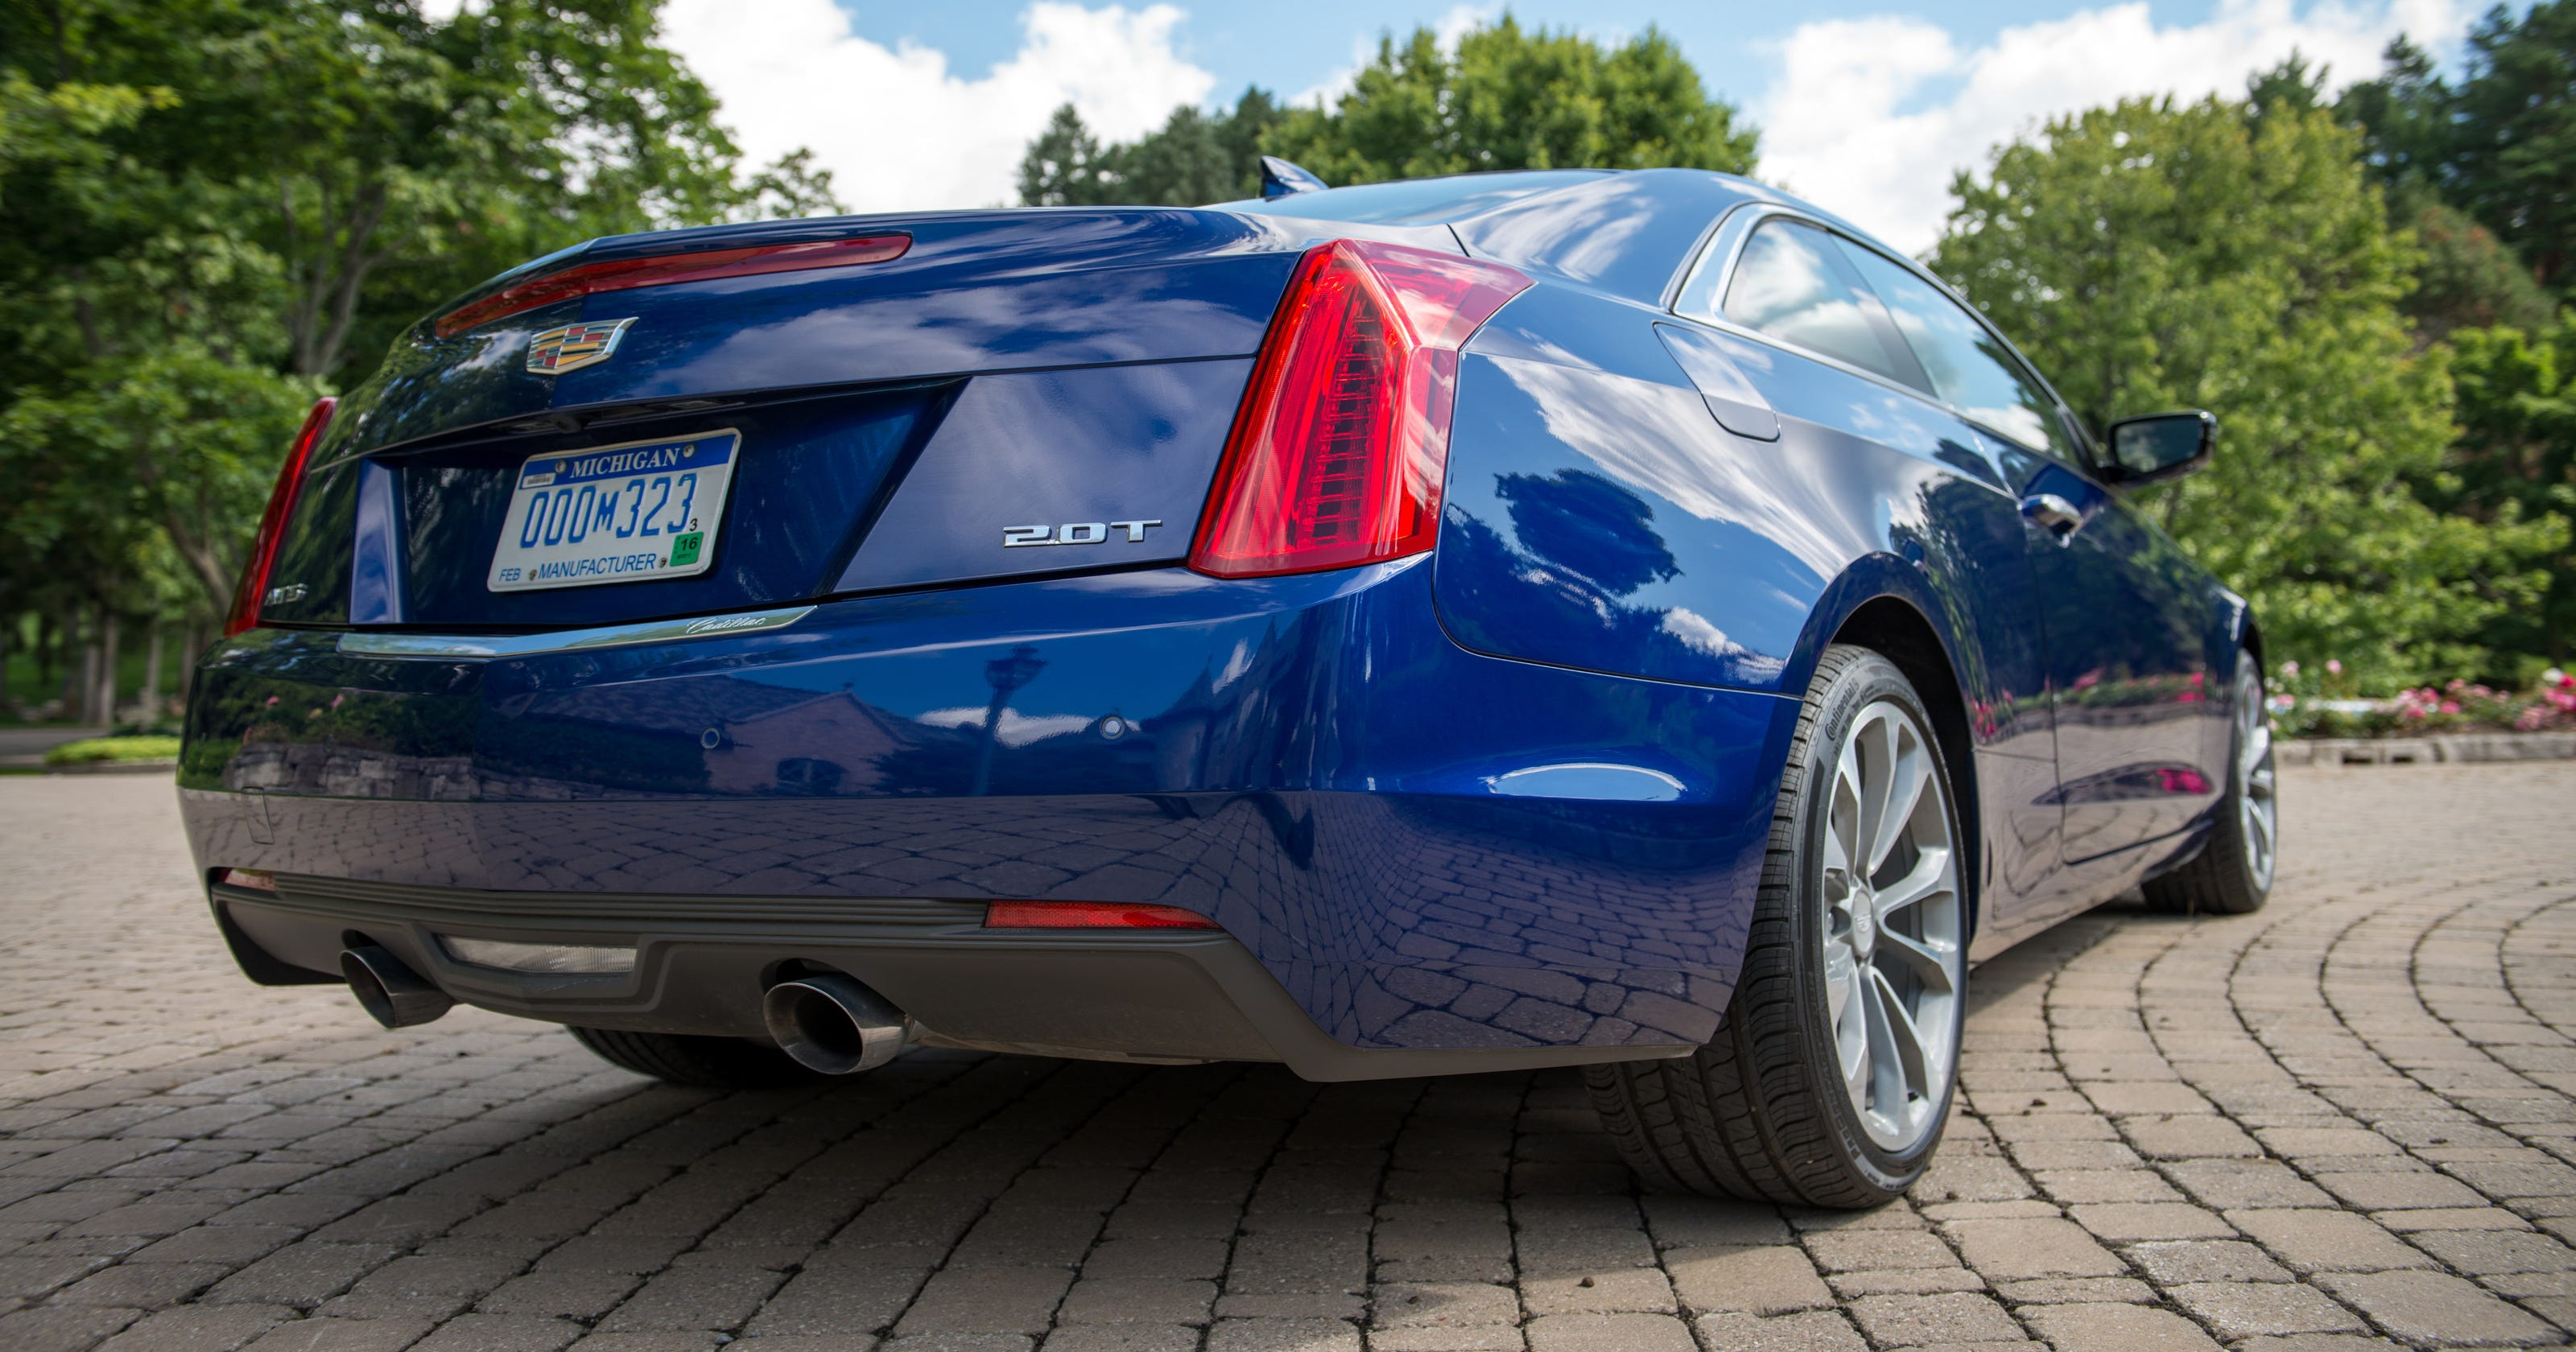 Auto review: Does 2015 Cadillac ATS Coupe have an image problem?